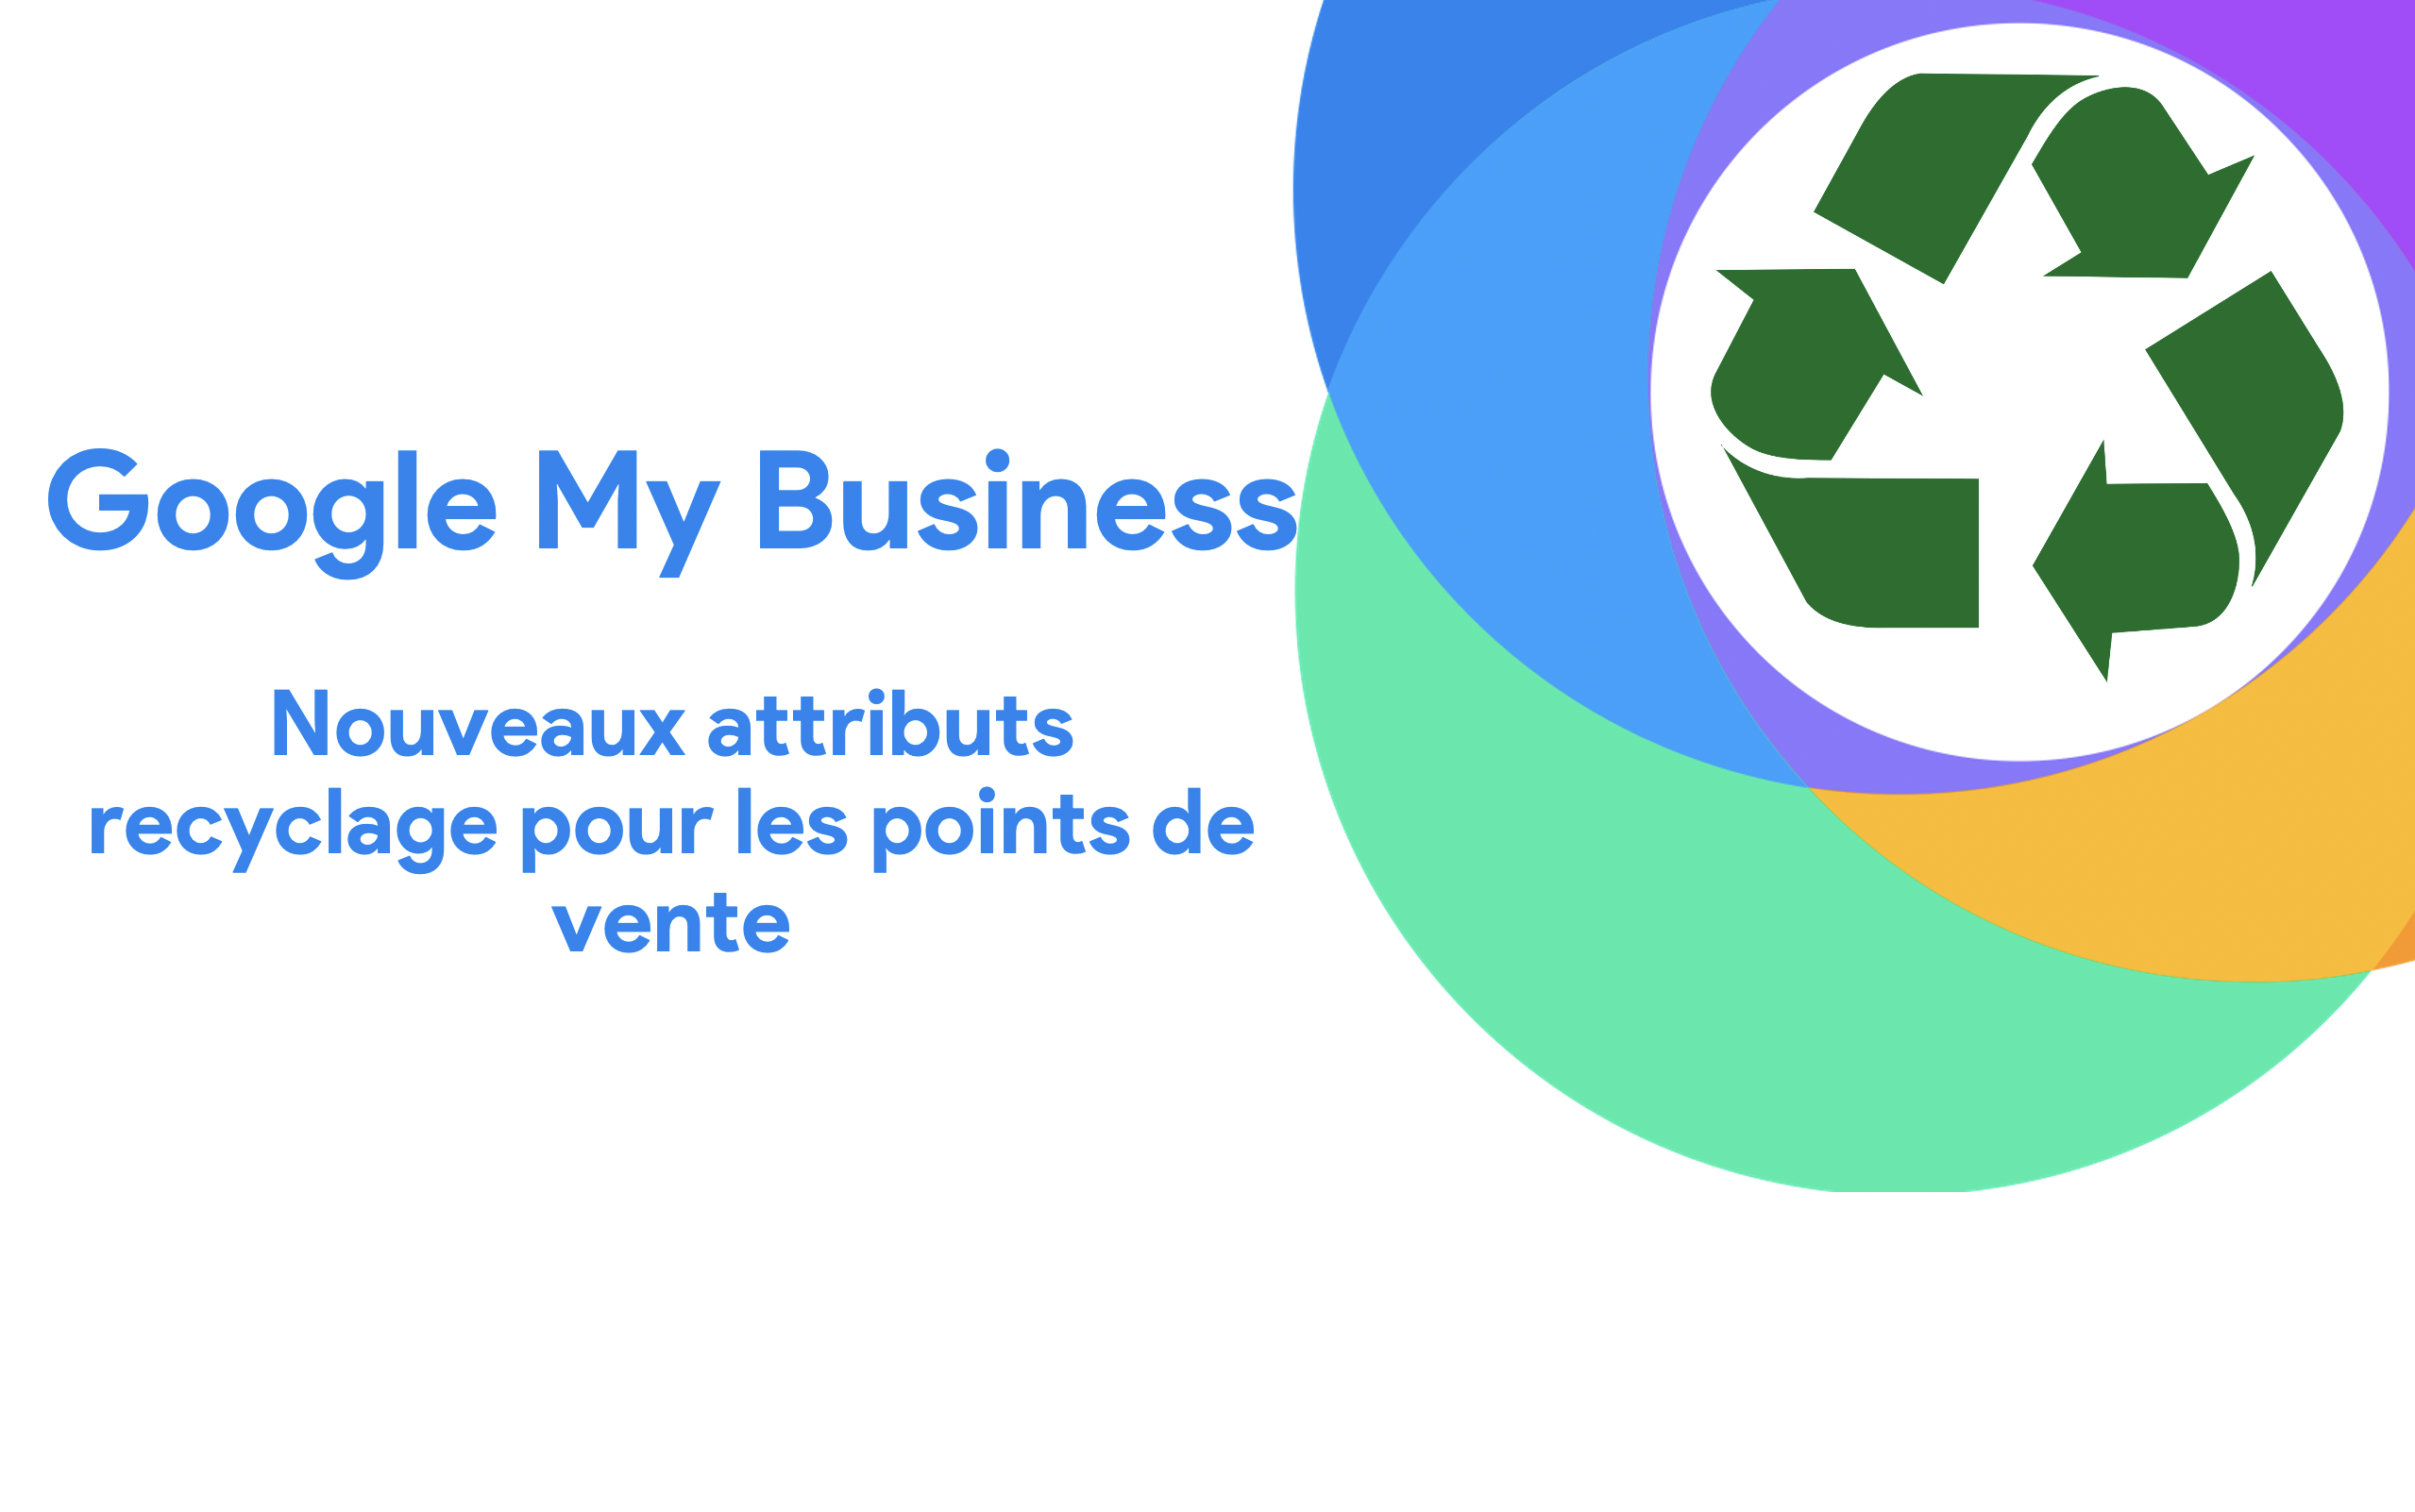 Les attributs recyclage dans Google My Business